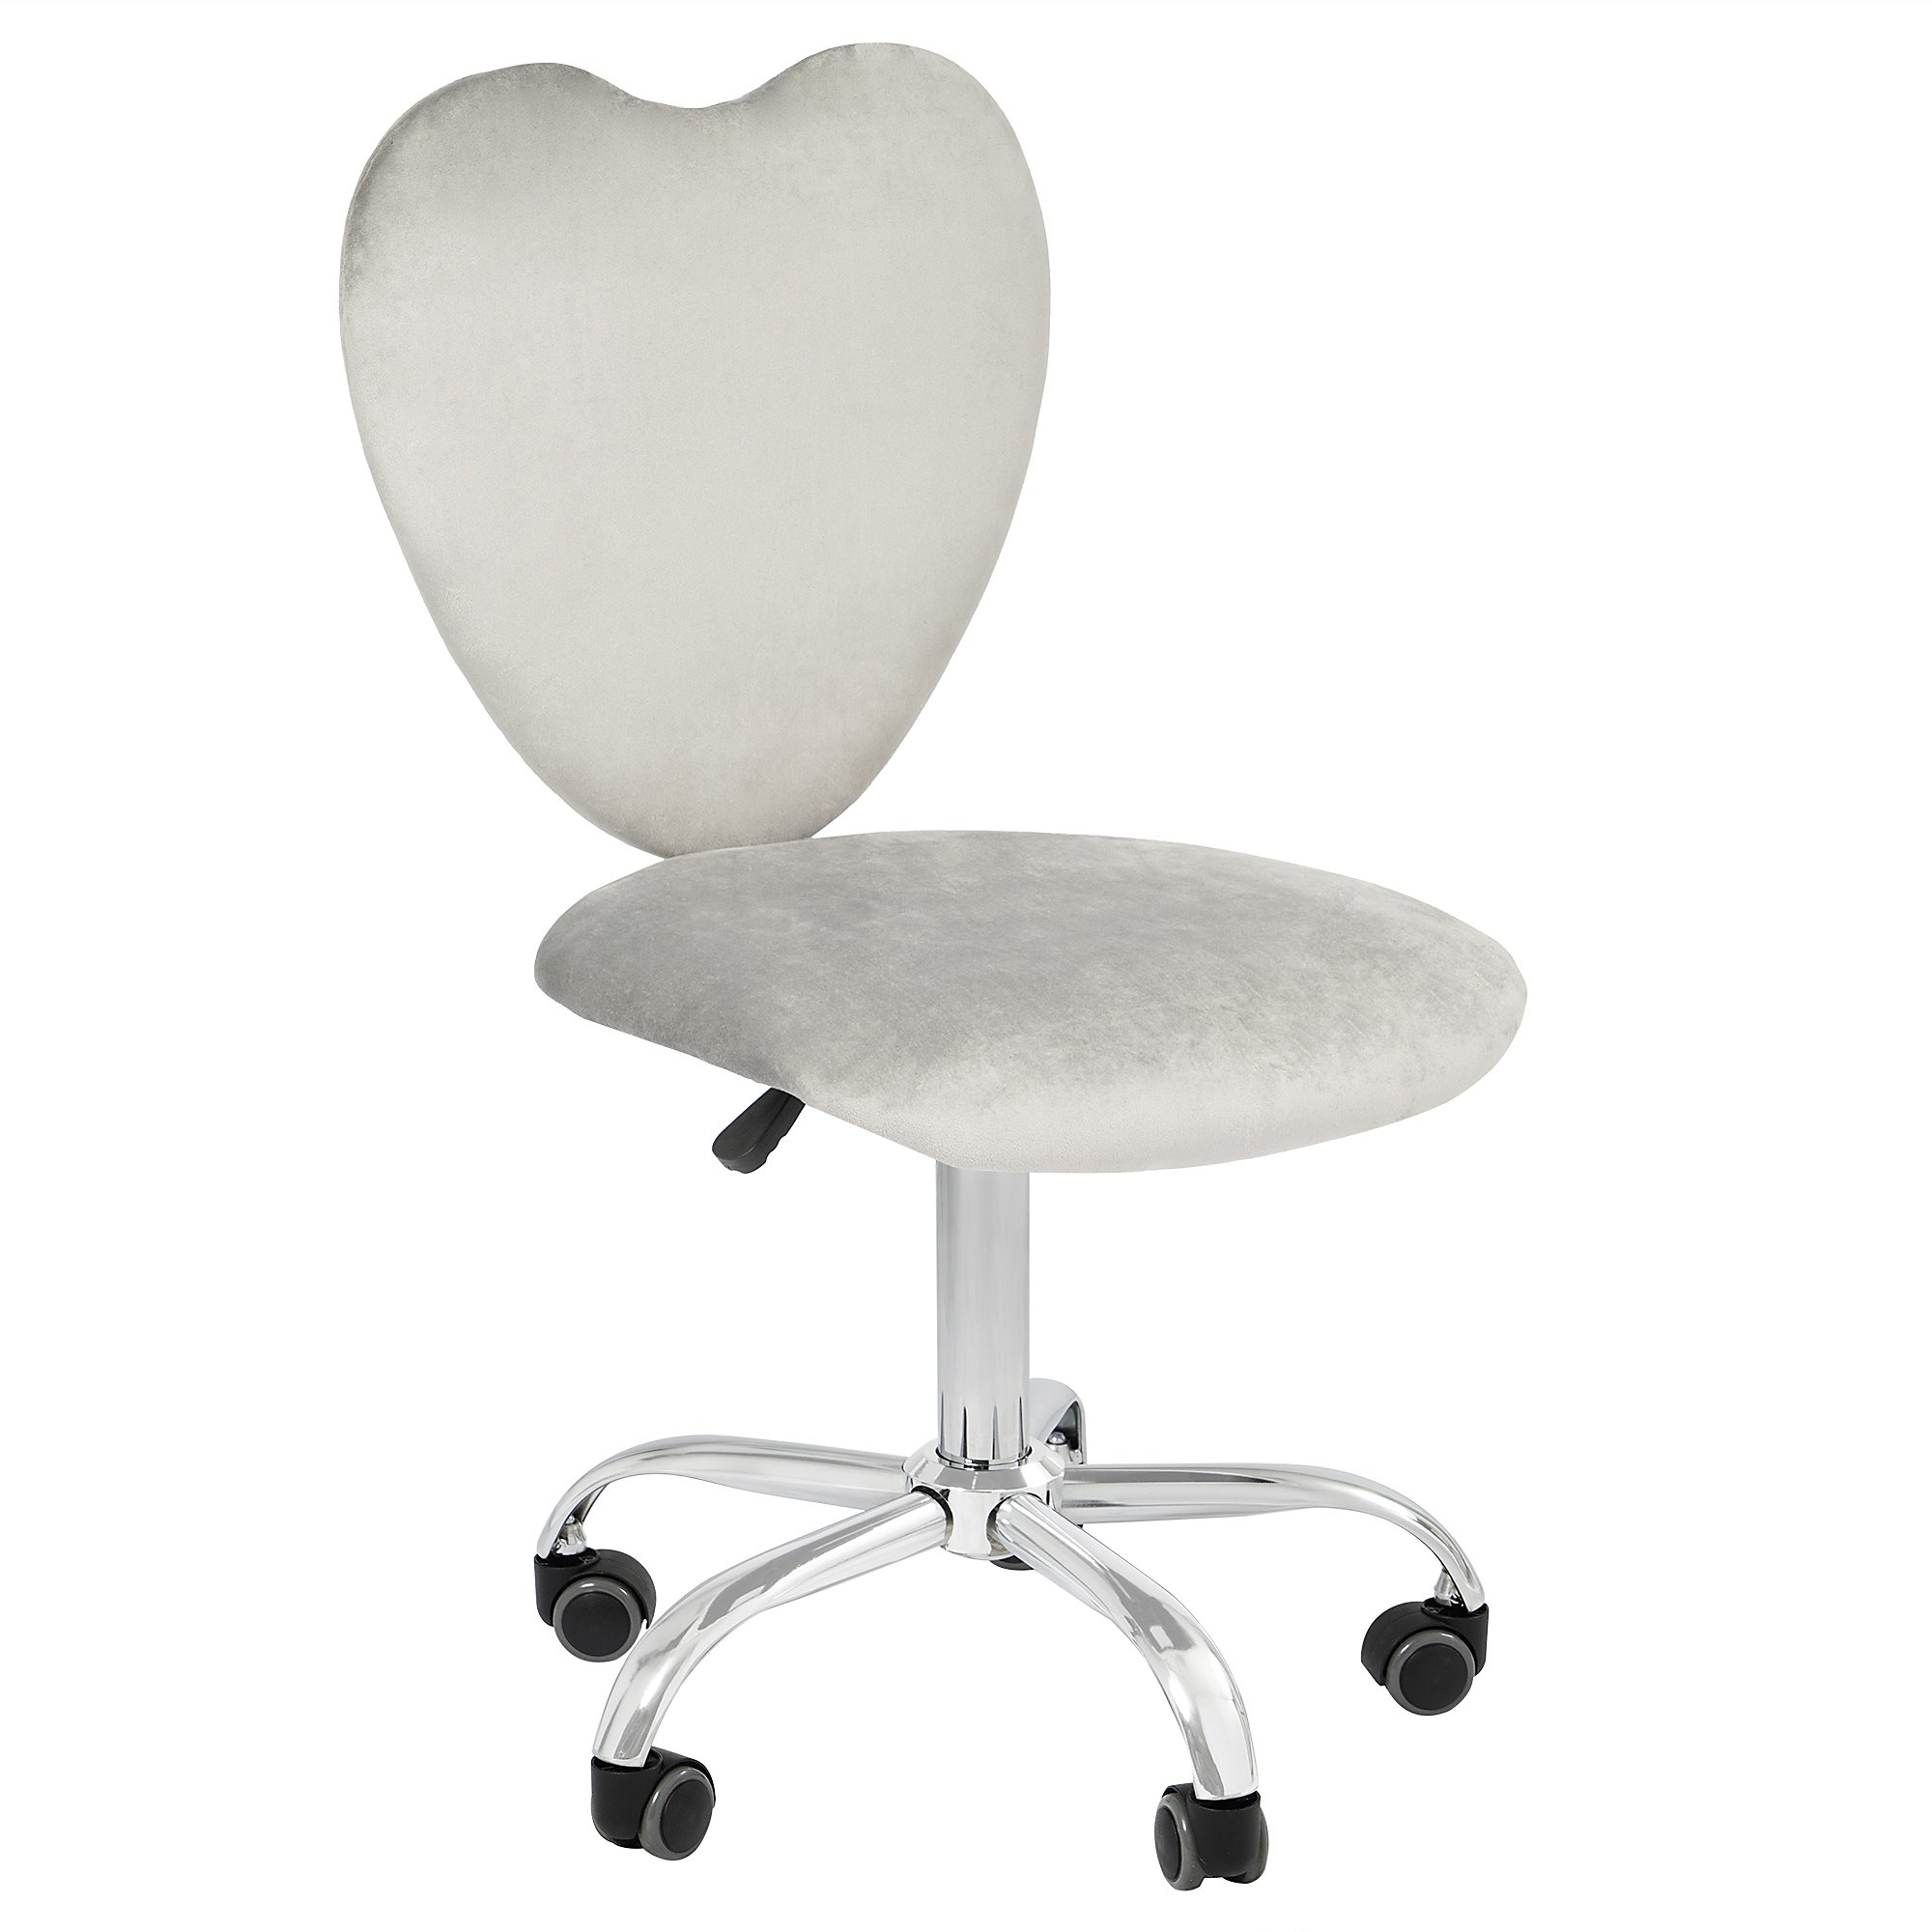 impressions heart three sixty degrees swivel vanity chair with adjustable height movable and wheelbase